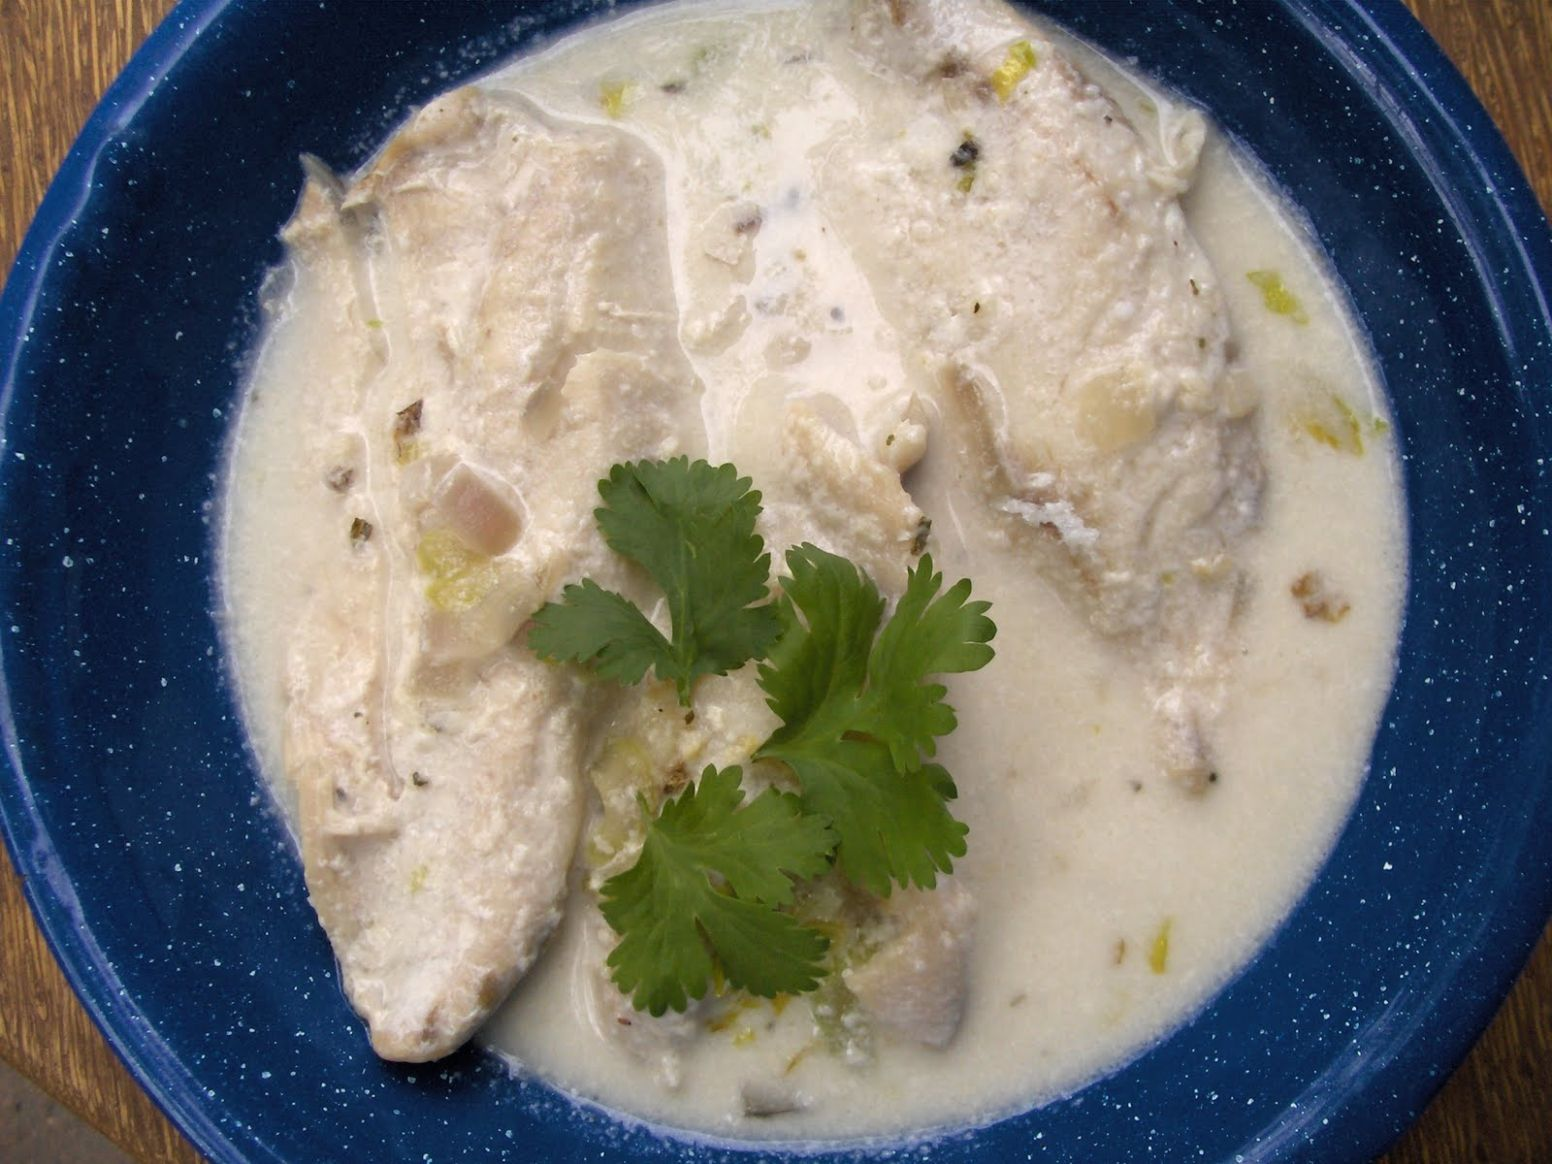 Fish fillets poached in coconut milk – Cooking in Mexico